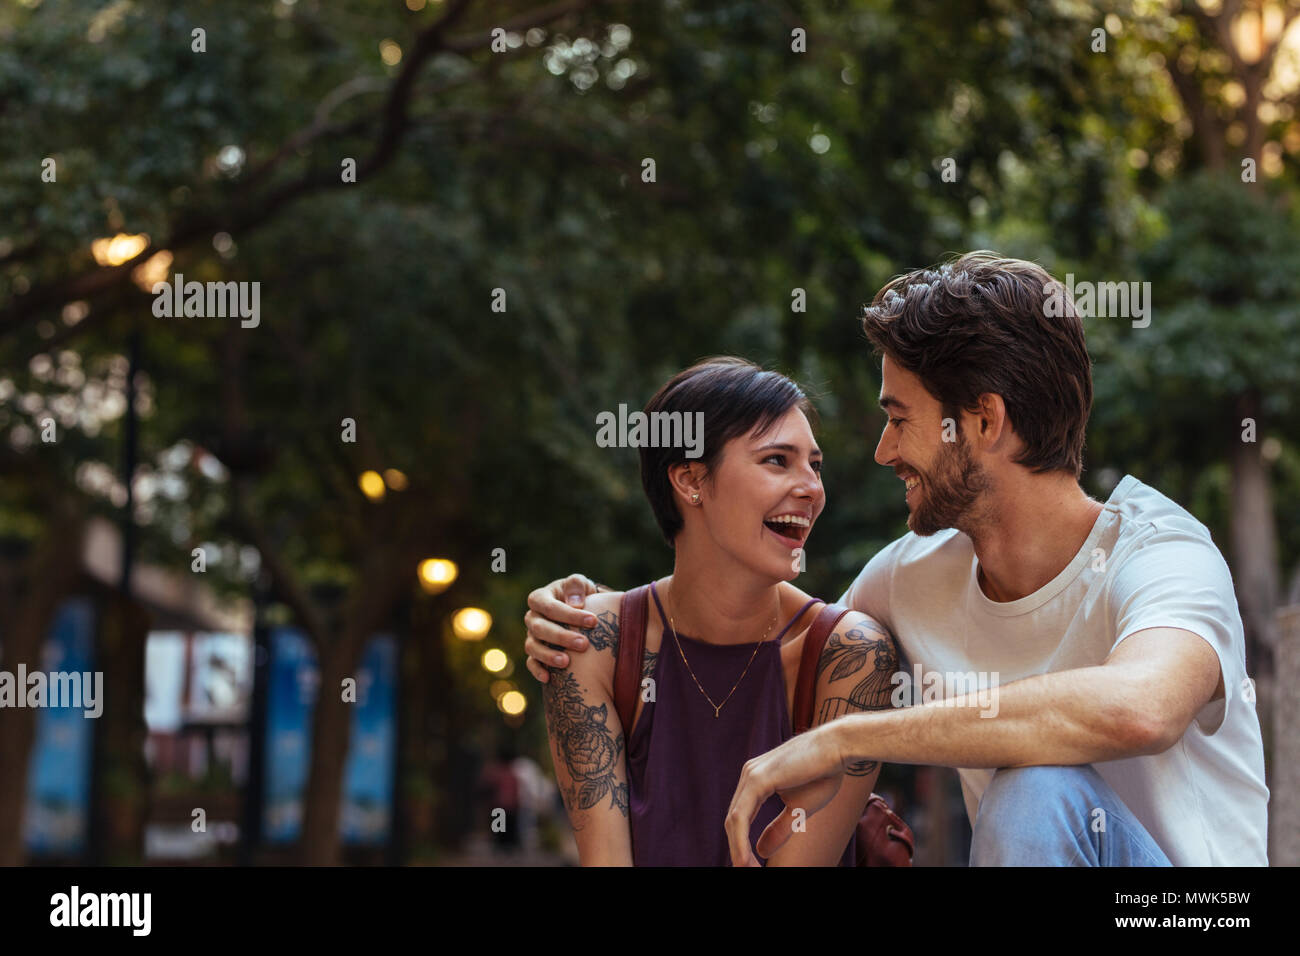 Happy explorer couple sitting outdoors and talking. Man talking to woman with his arm around her shoulders. Stock Photo